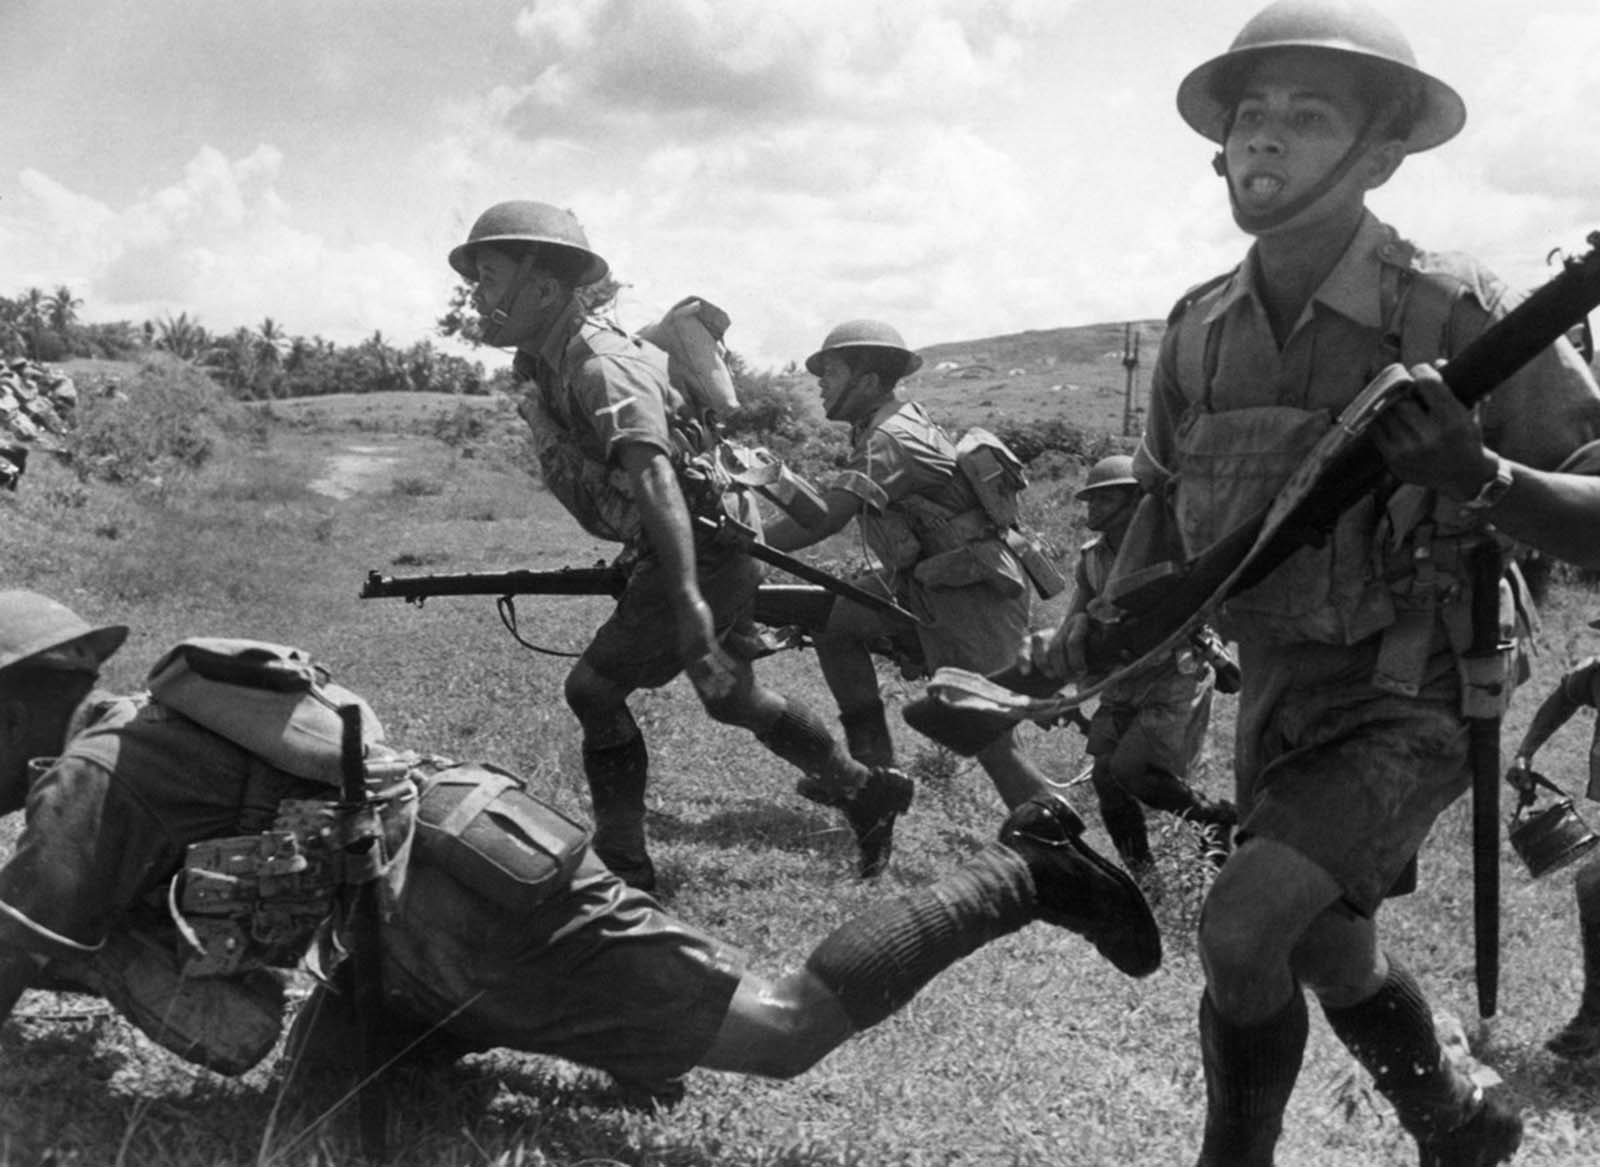 Malayan soldiers intent on defending their peninsula charge forward at a Malay battle zone on February 10, 1942, before the Japanese completed their occupation of the peninsula and pushed Britons back onto Singapore Island.